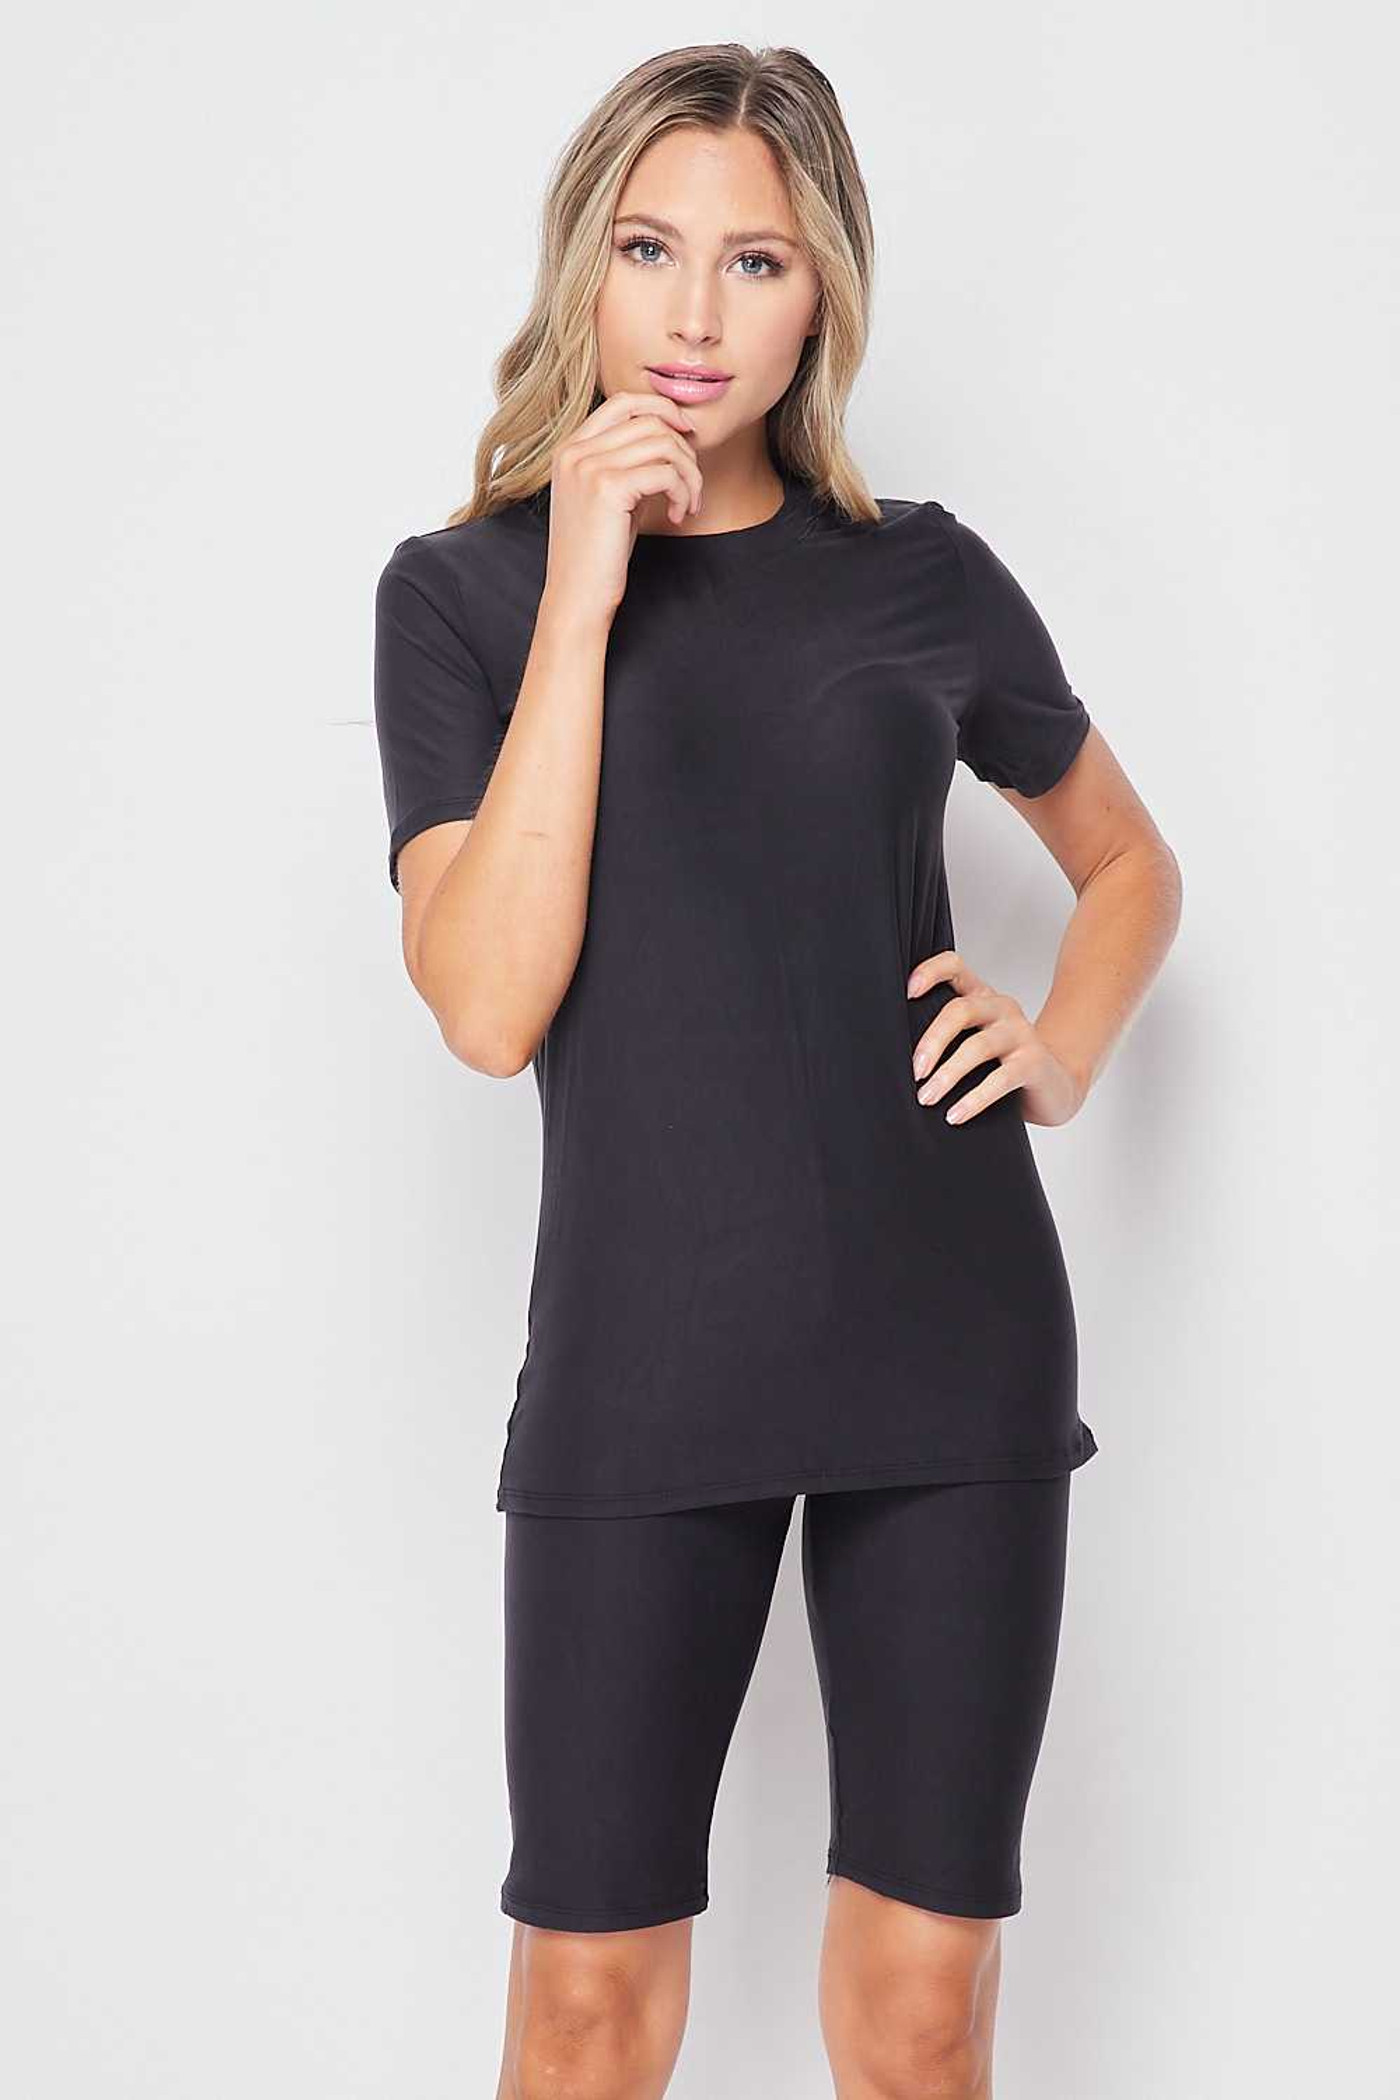 Charcoal Buttery Soft Basic Solid Biker Shorts and T-Shirt Set